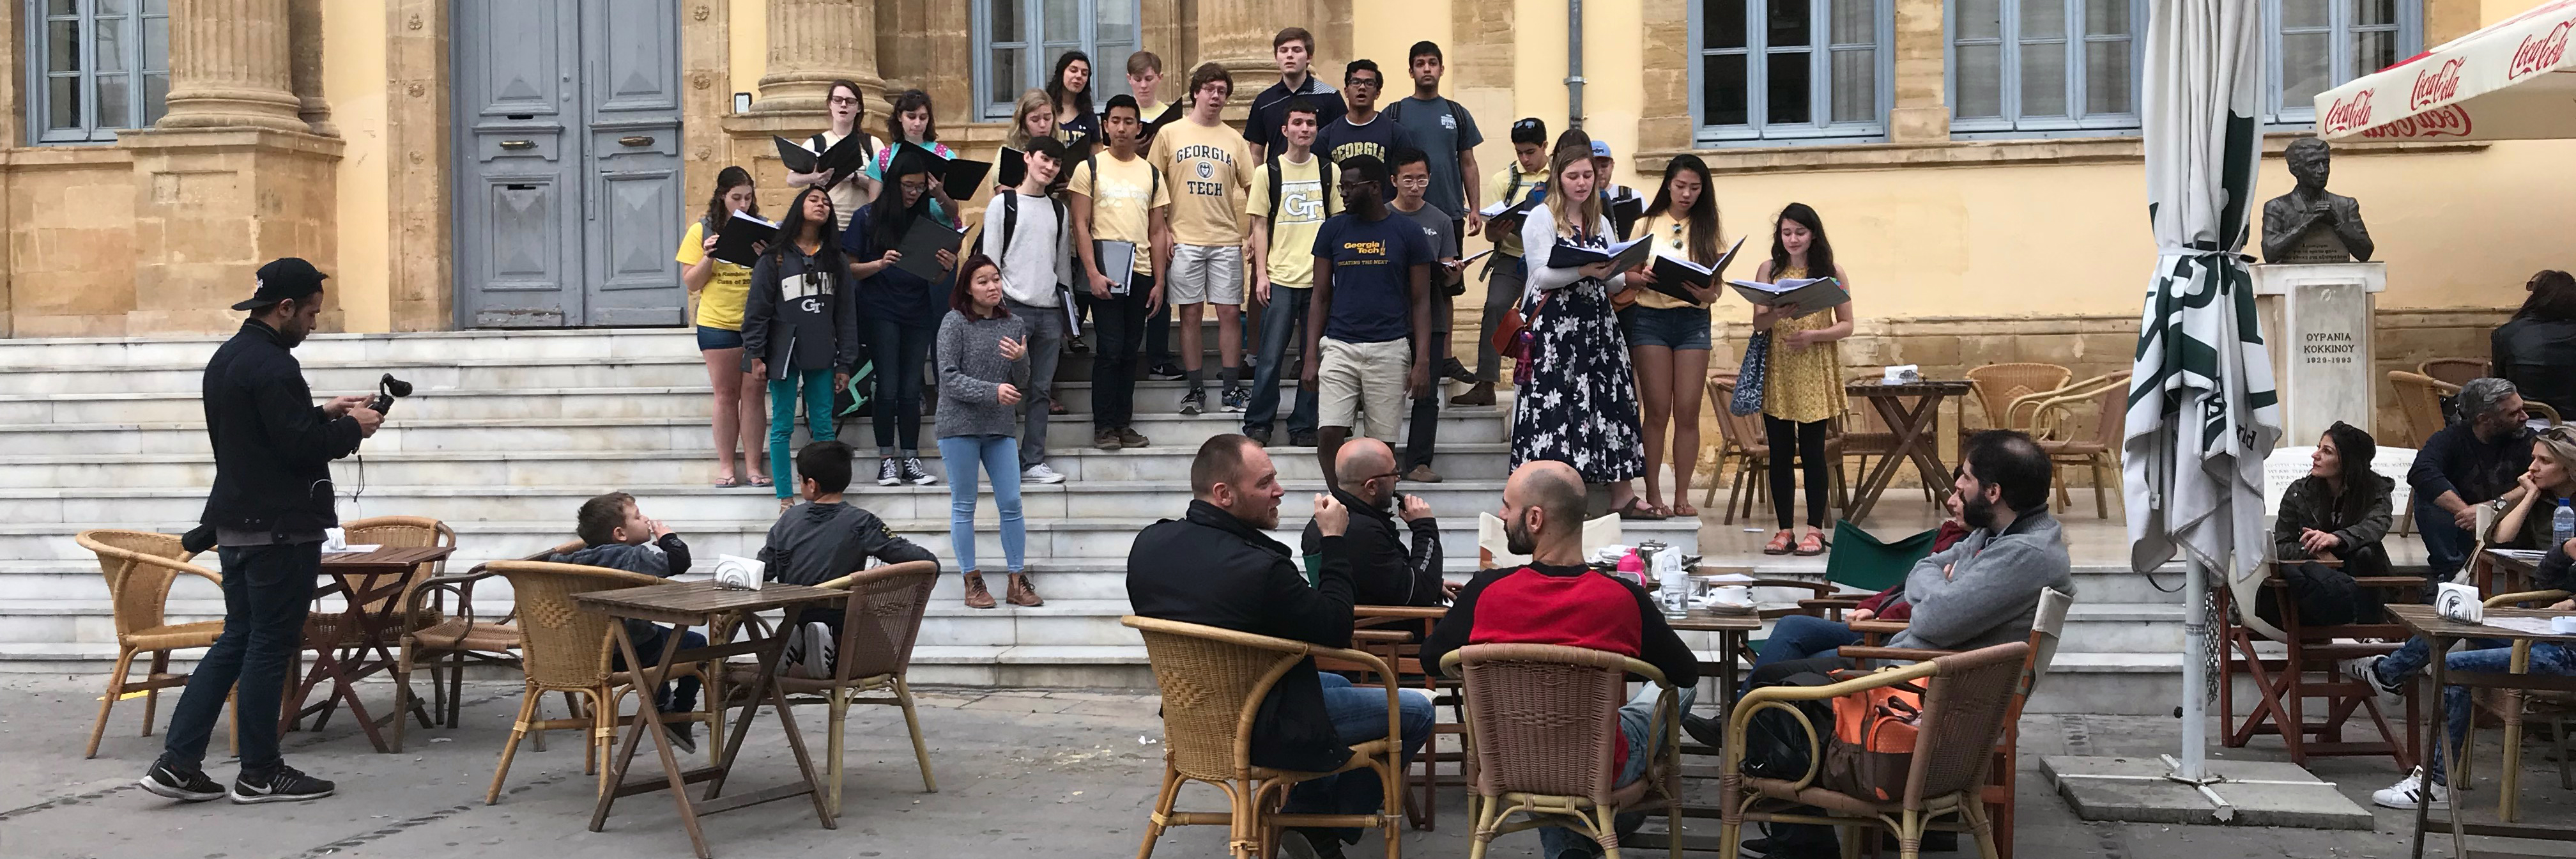 The Chamber Choir performs in a pop-up concert on the streets Nicosia, the capital city of Cyprus.